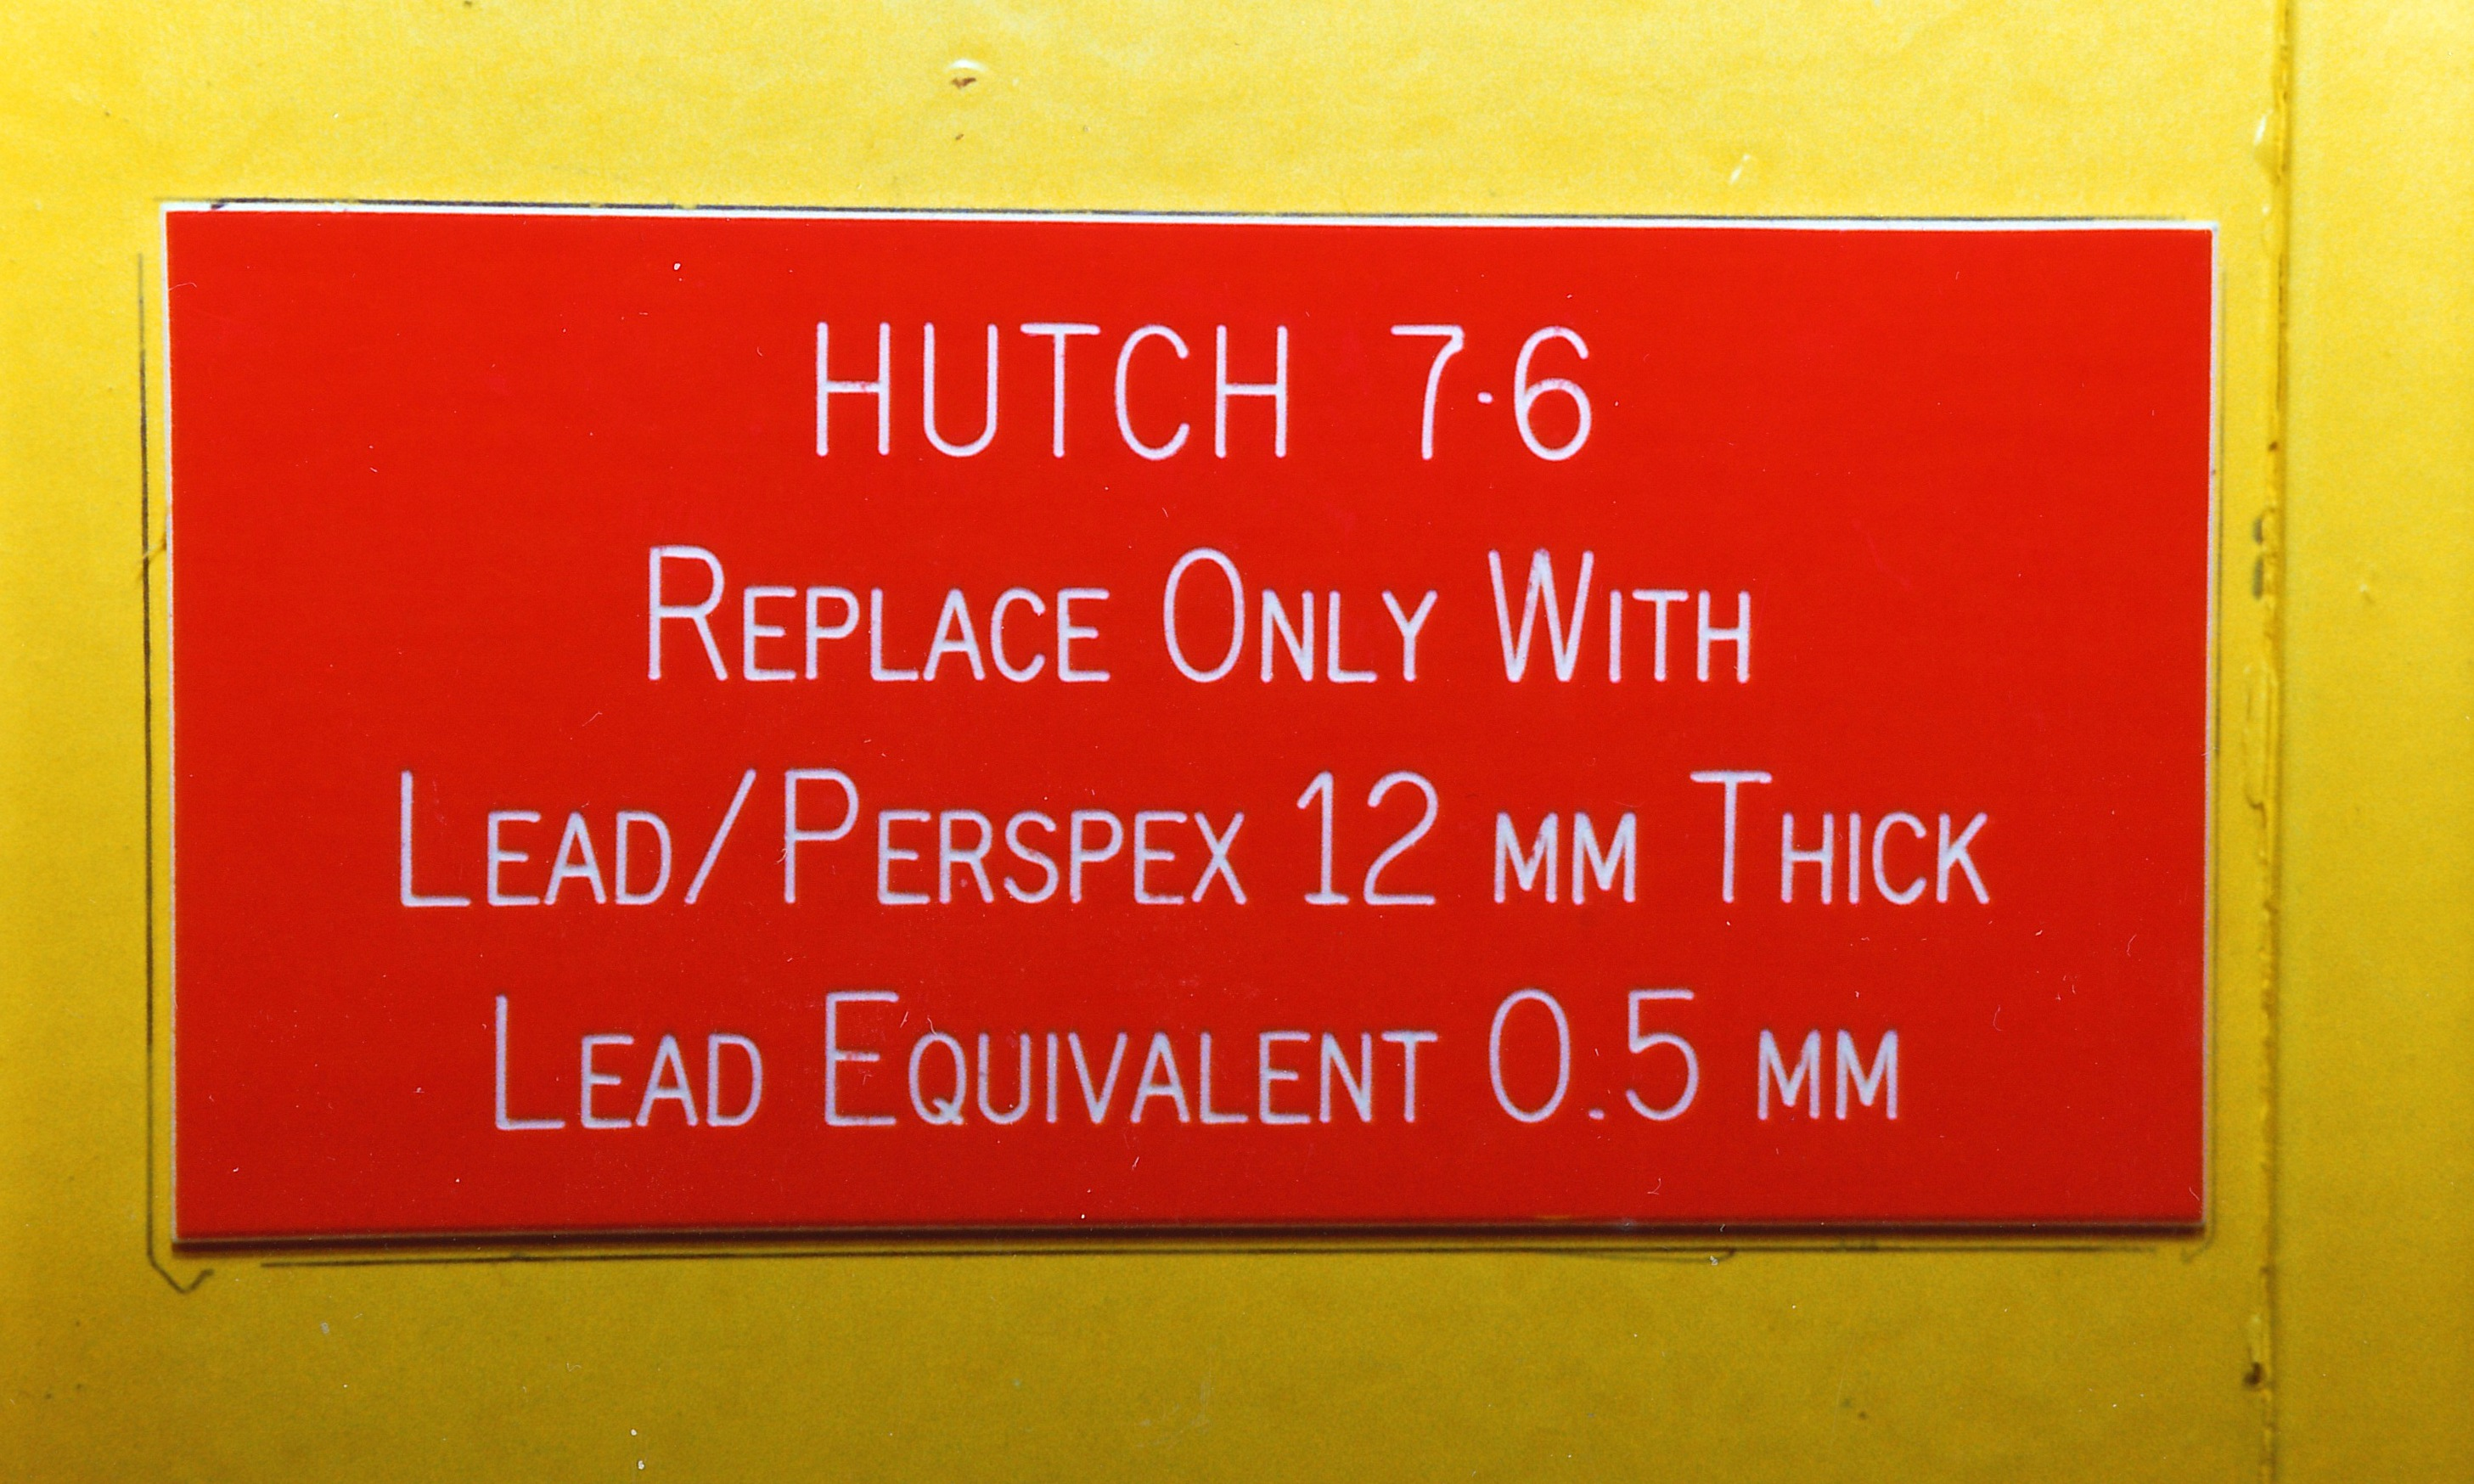 029Dares019.jpg - Warning sign on hutch of station 7.6, Oct 1992